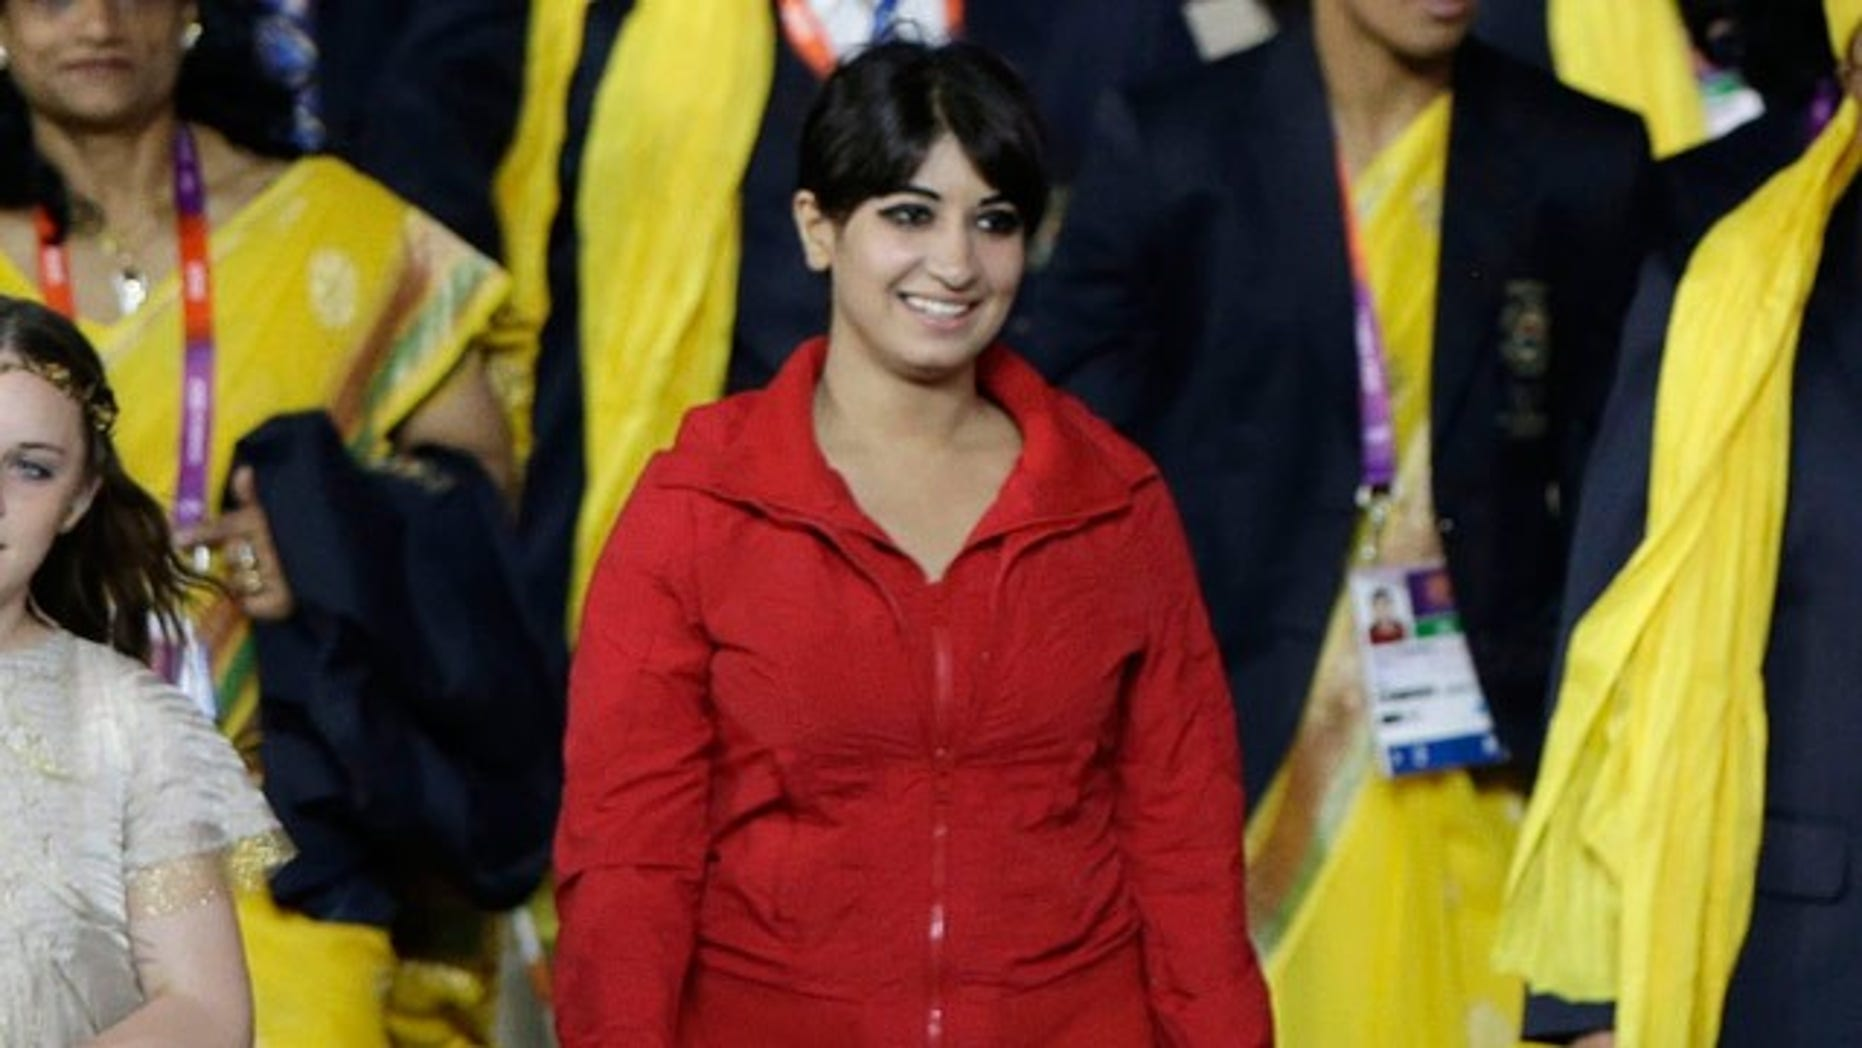 July 27, 2012: A cast member is shown walking with the Indian team during the Opening Ceremony at the 2012 Summer Olympics.